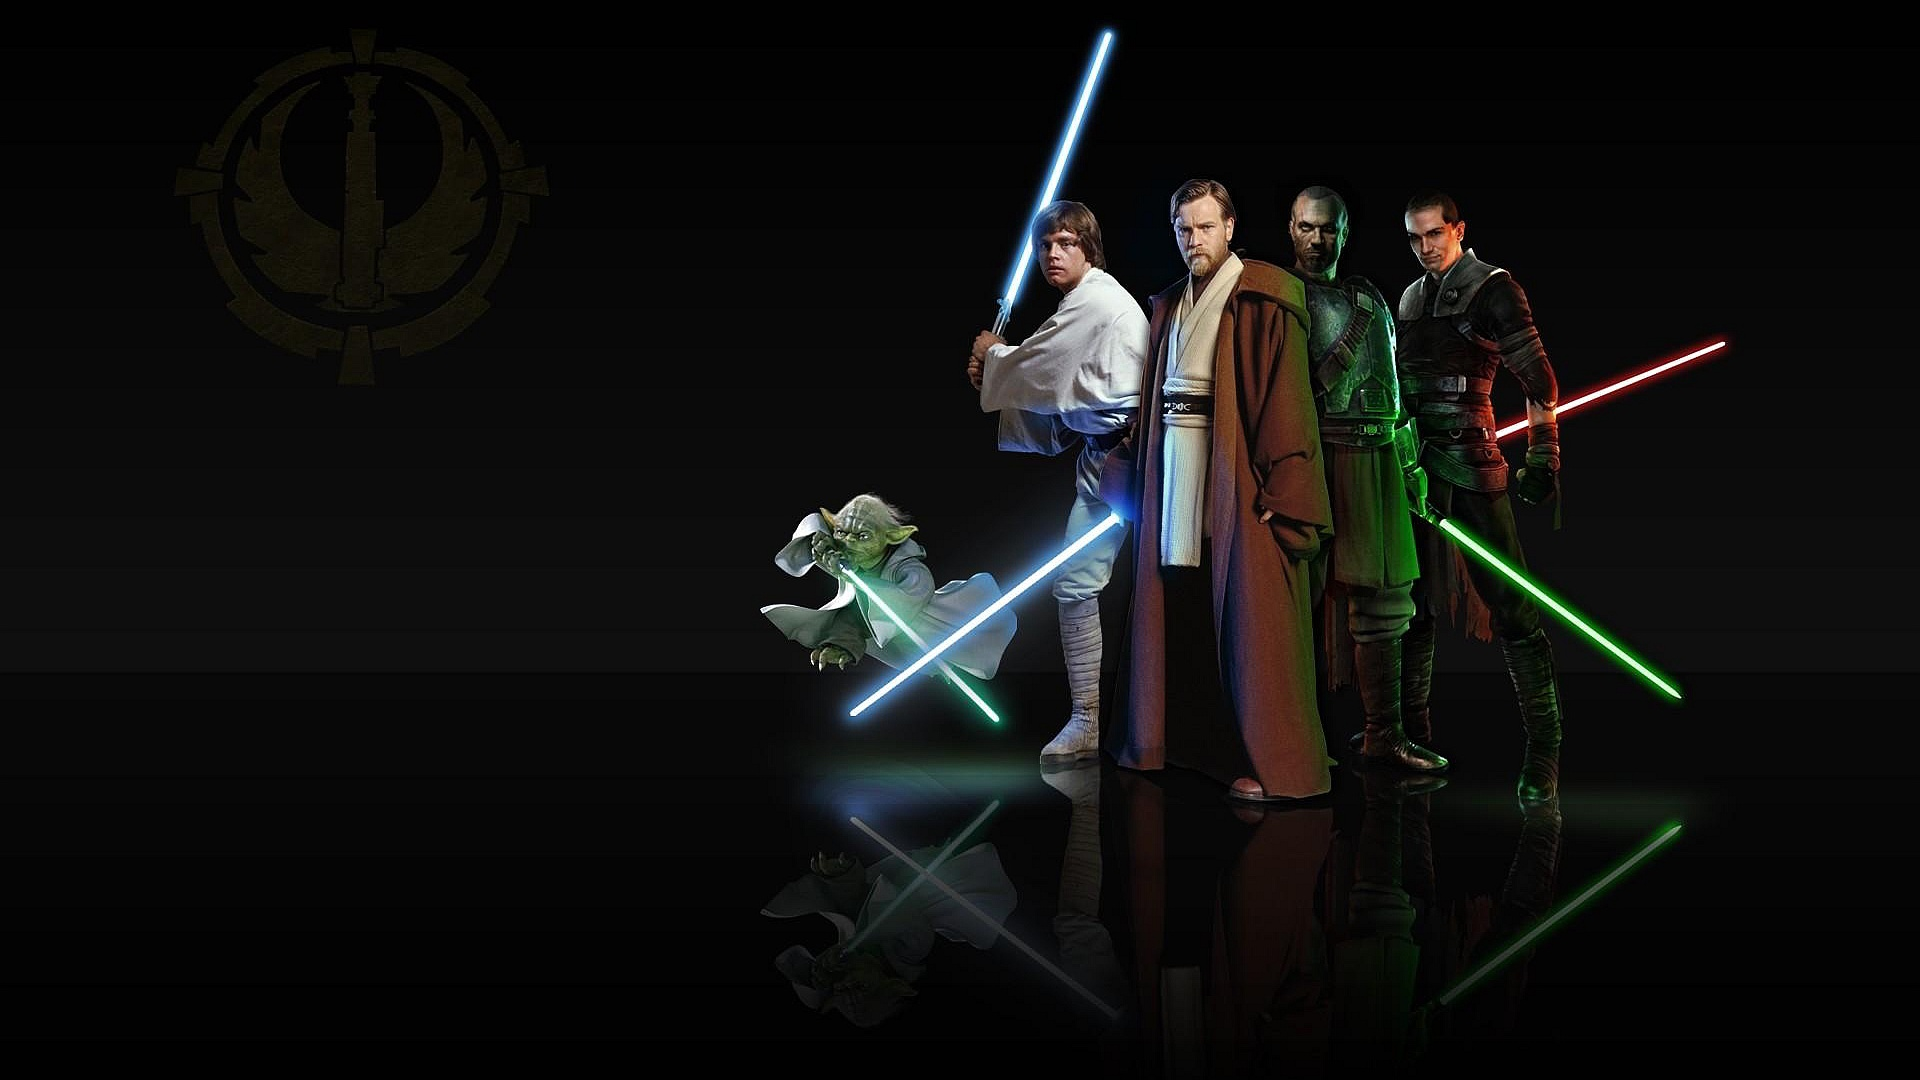 Wallpaper-star-wars-Picture-wallpaper